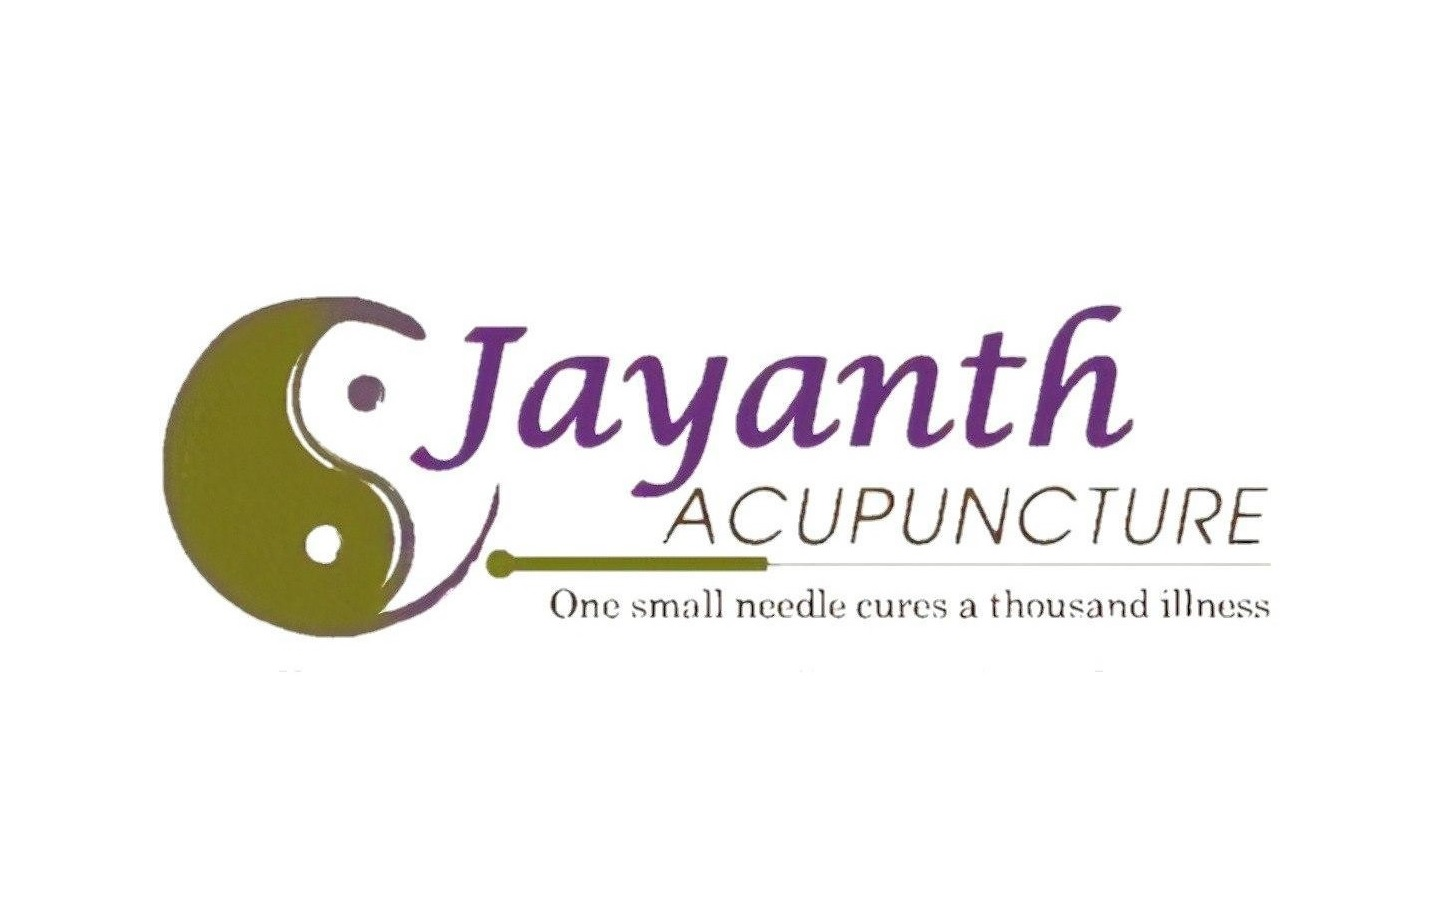 Chennai Jayanth Acupuncture